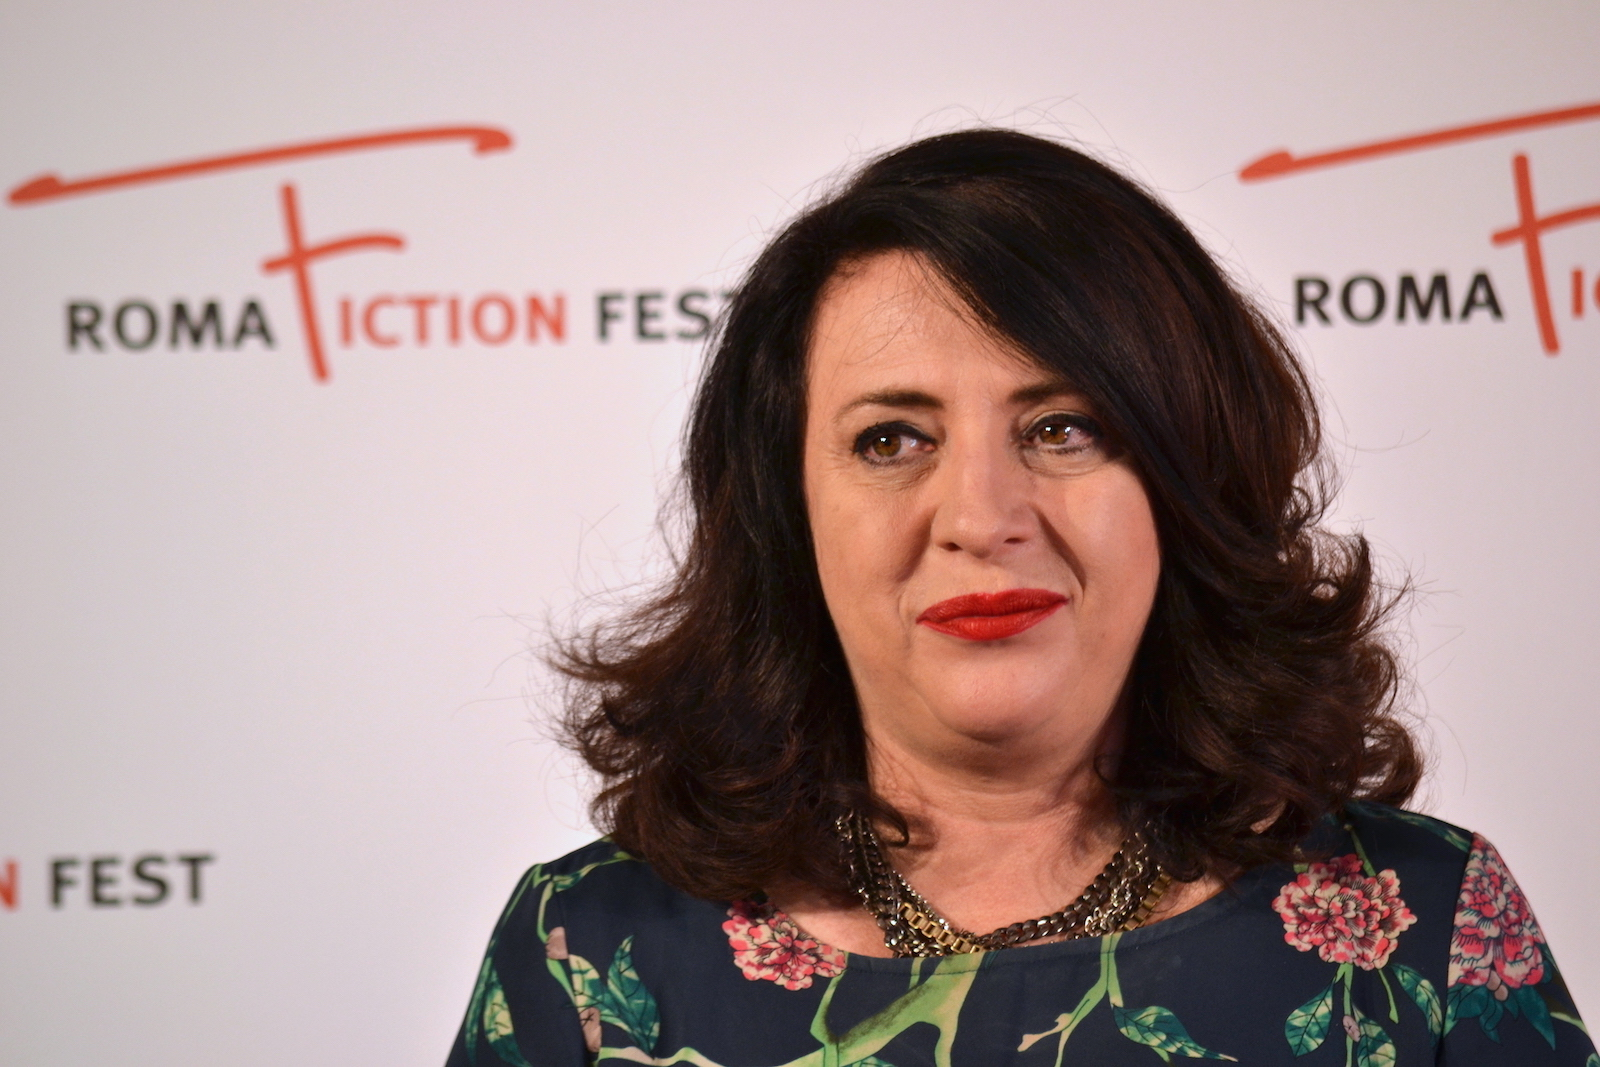 Roma Fiction Fest 2015: un primo piano di Louise Fox produttrice e sceneggiatrice di Glitch